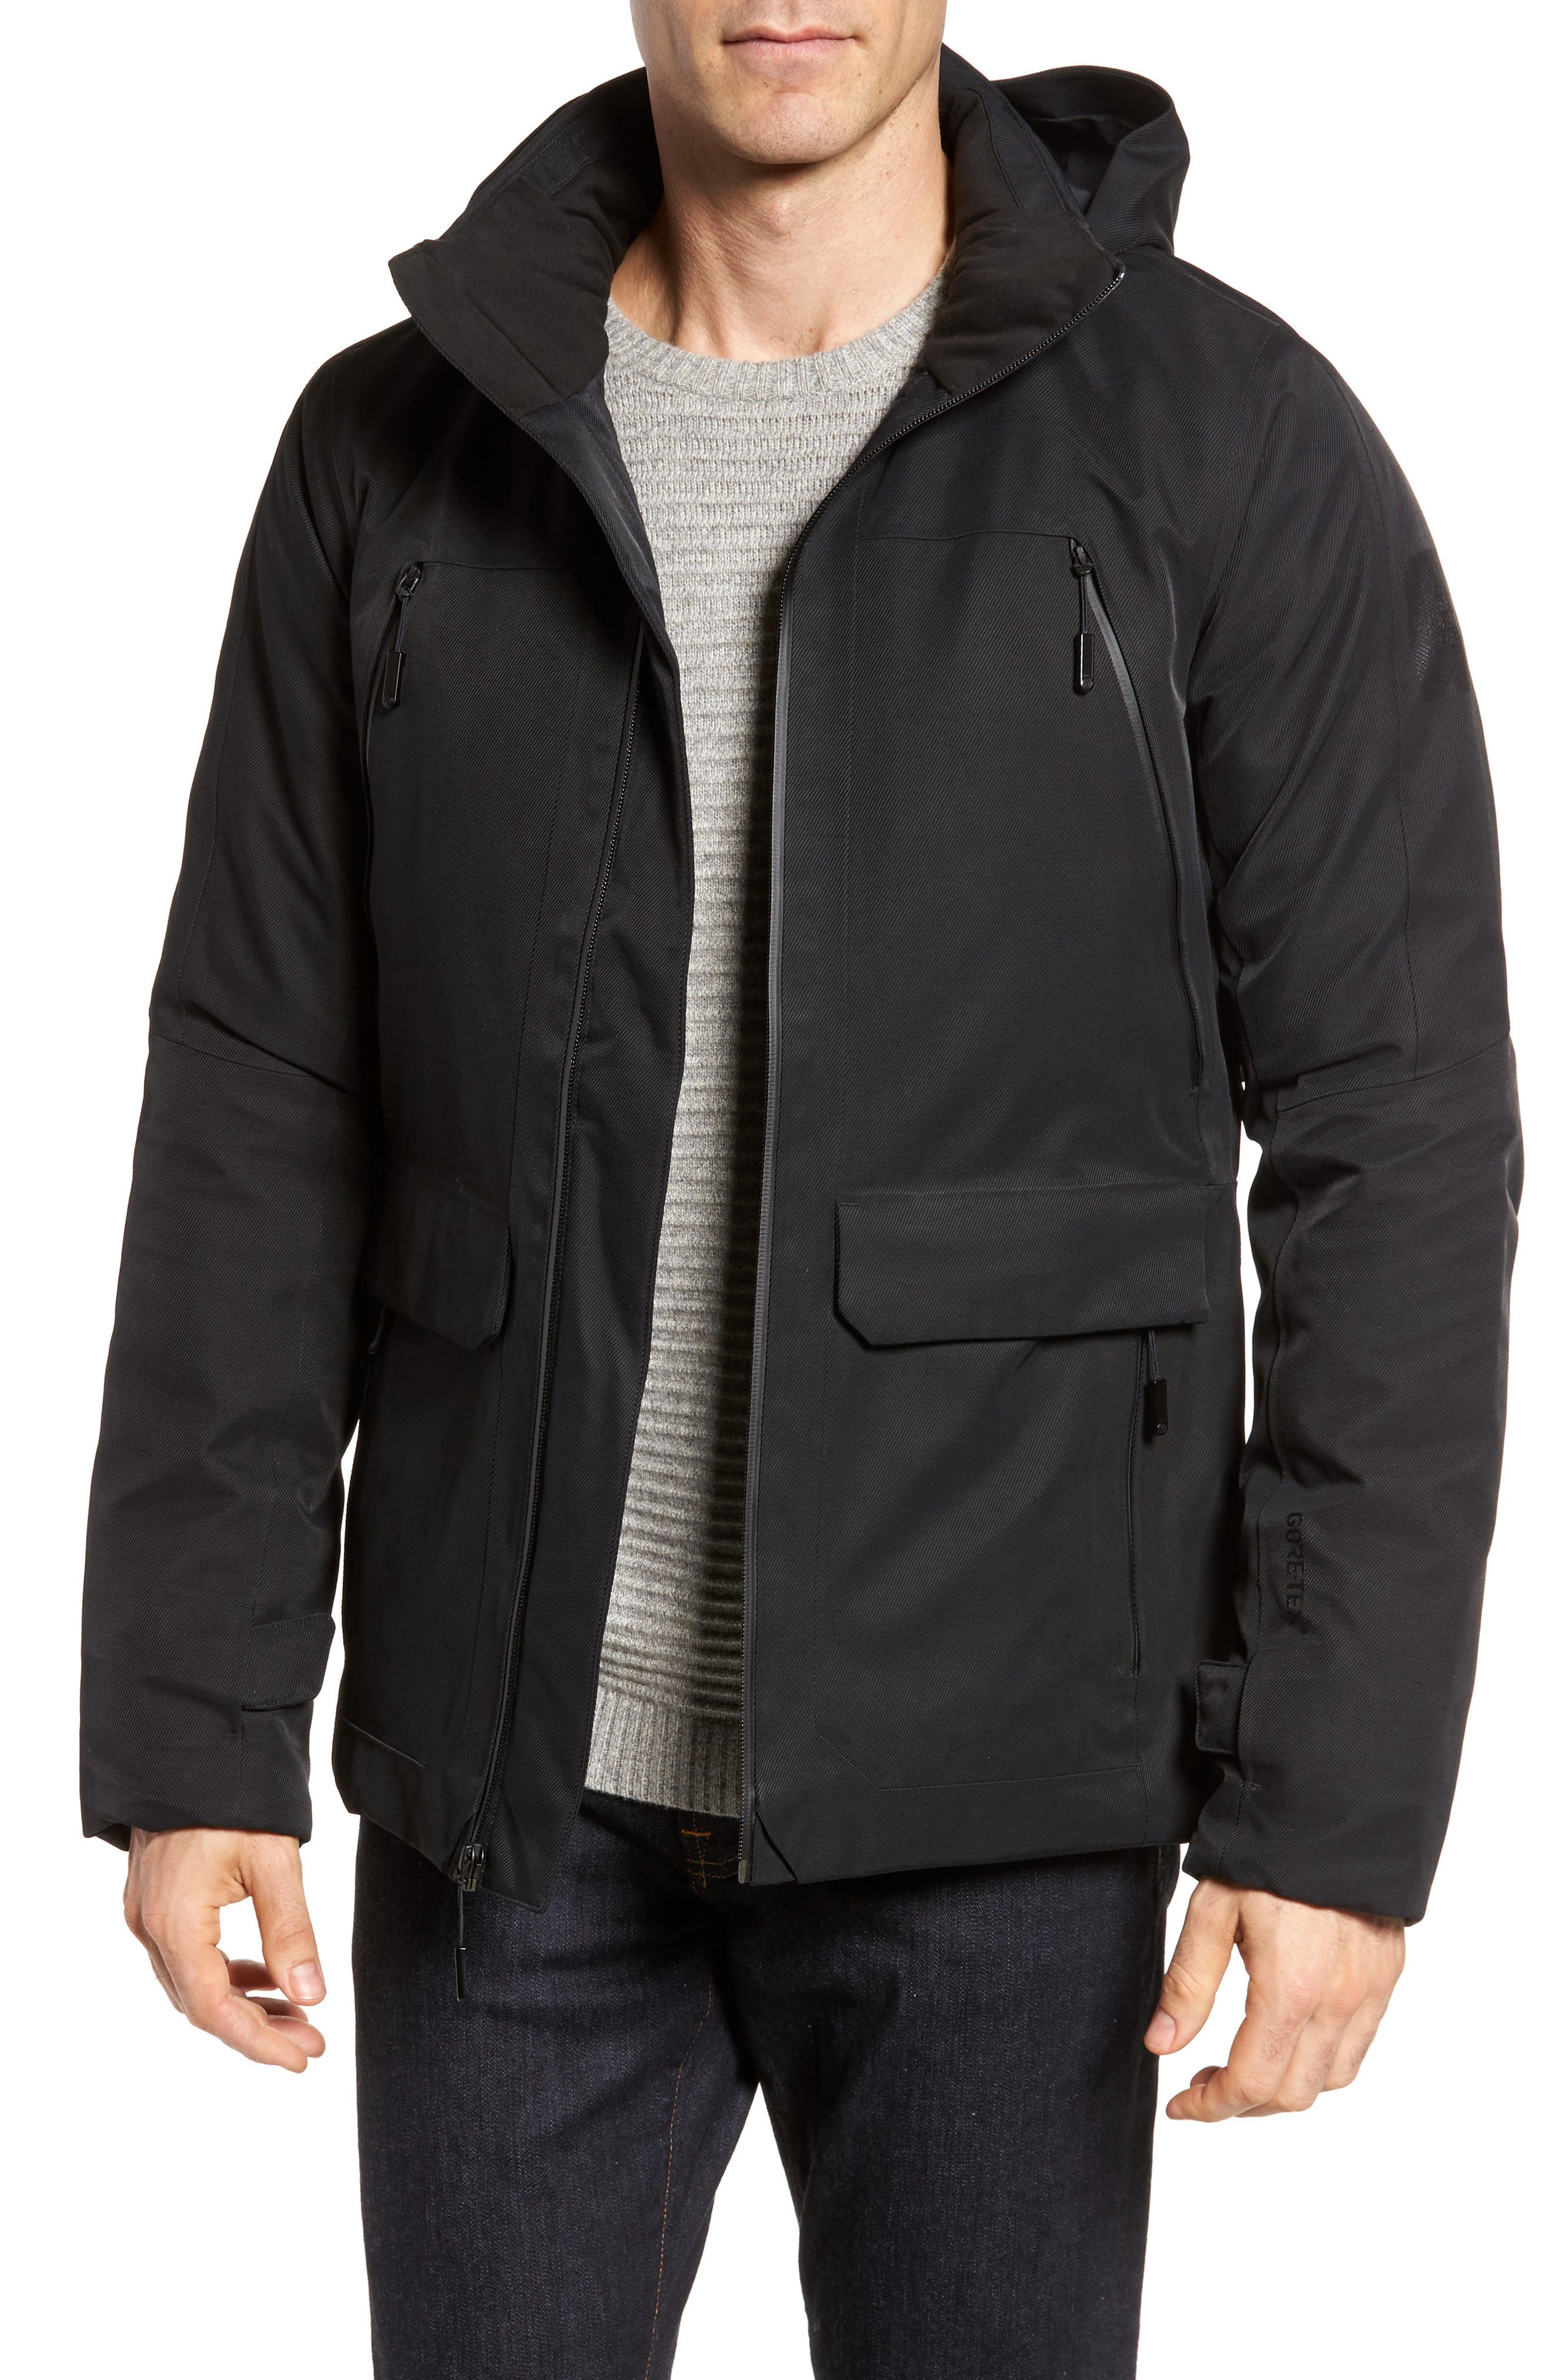 Cryos Waterproof Gore-Tex<sup>®</sup> PrimaLoft<sup>®</sup> Gold Insulated Jacket,                         Main,                         color, Black